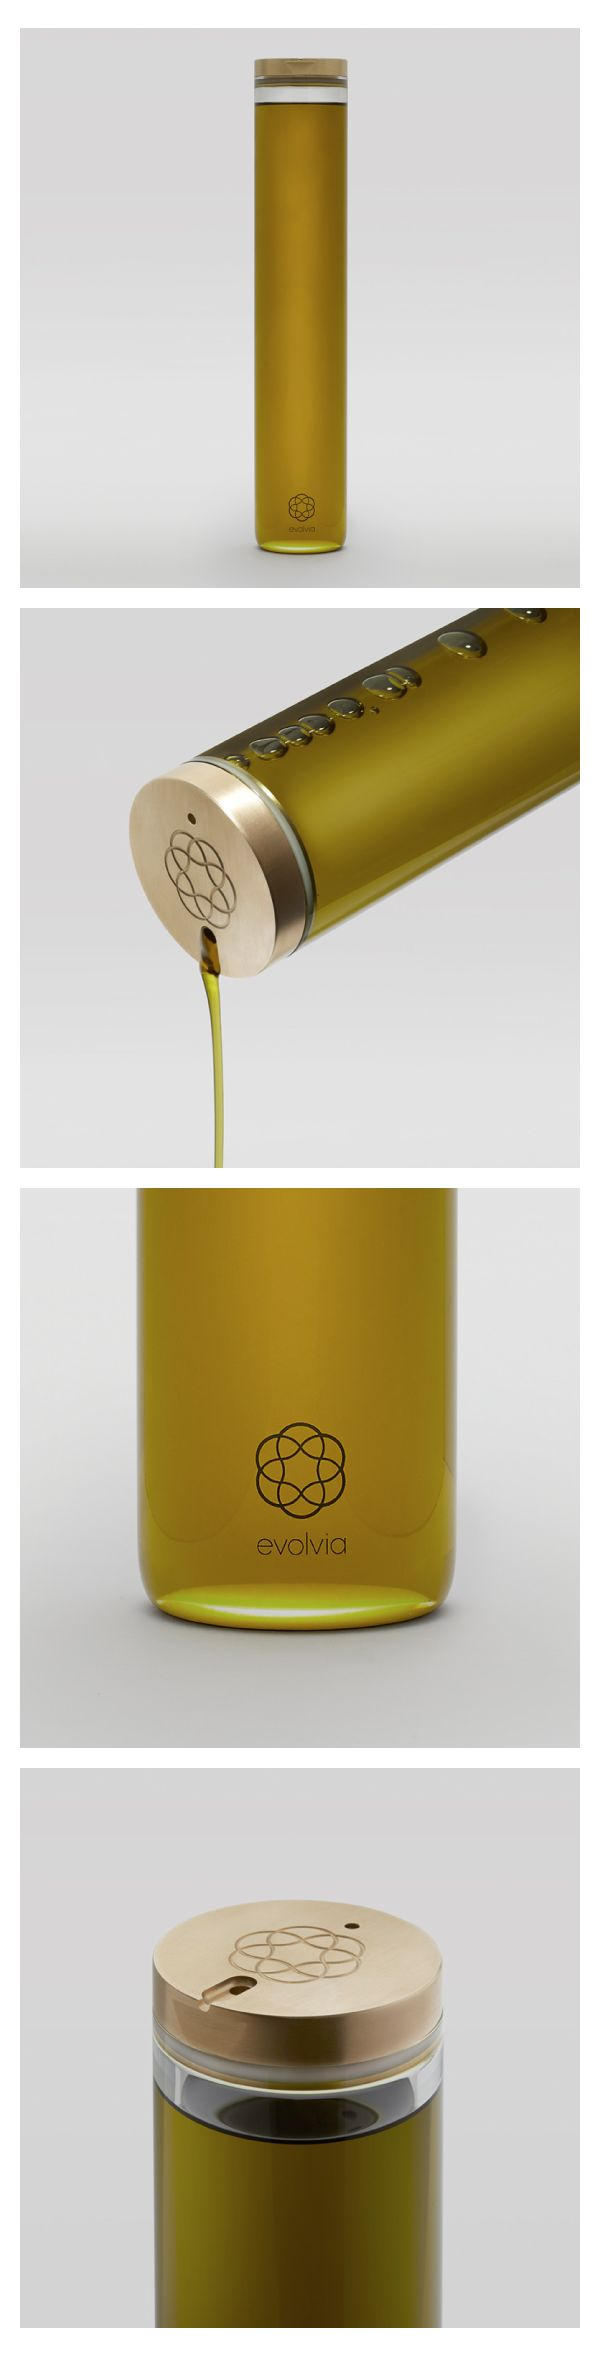 Luxurious Portuguese organic extra virgin olive oil, British-made, Limited Edition keep-forever glass pourer.